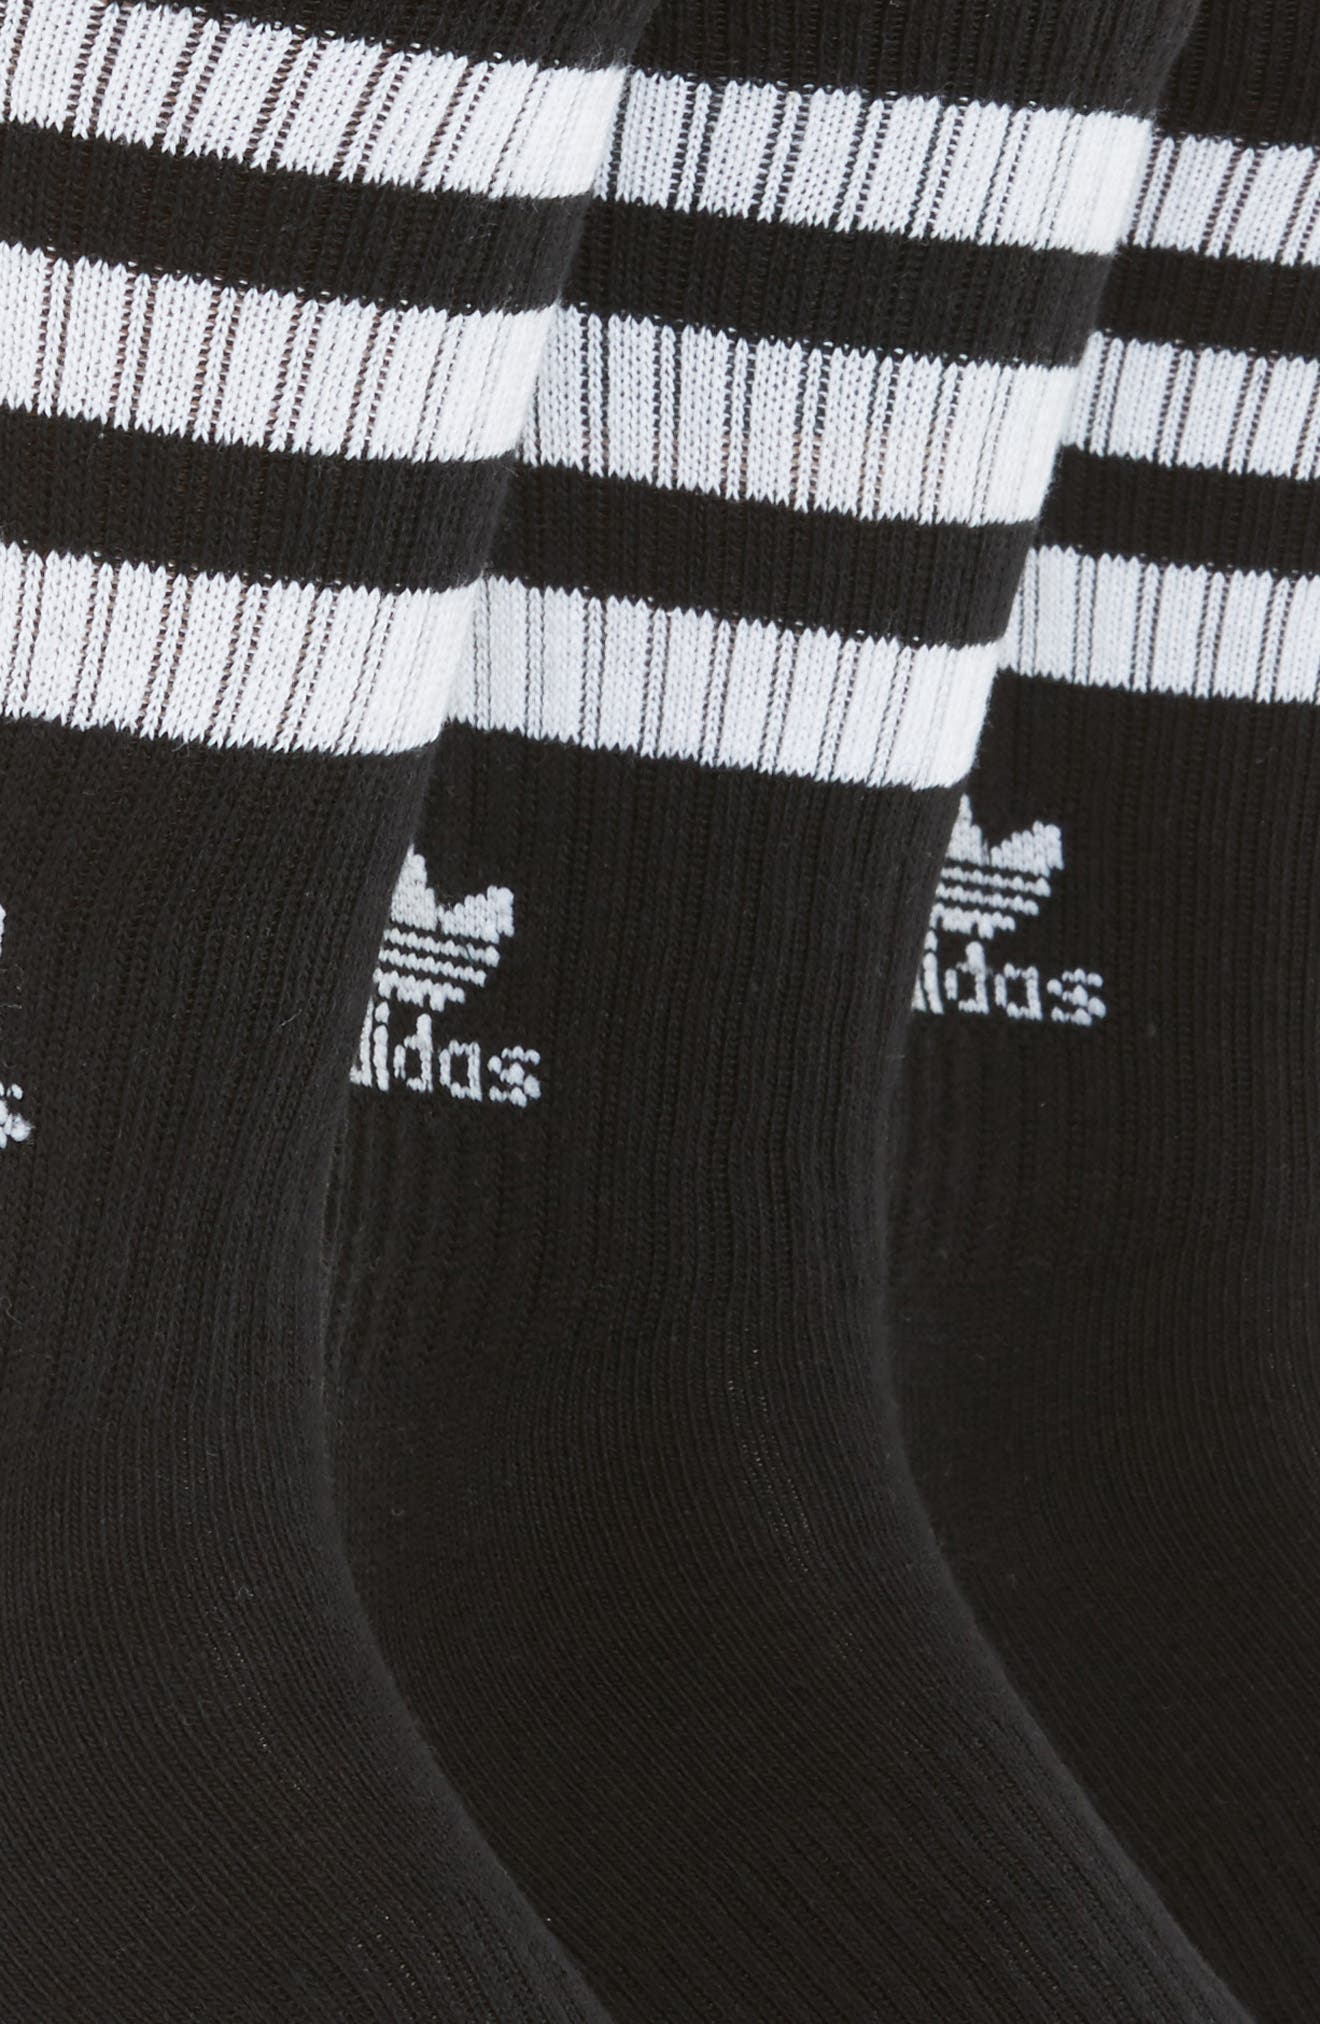 3-Pack Original Roller Crew Socks,                             Alternate thumbnail 2, color,                             BLACK/ WHITE